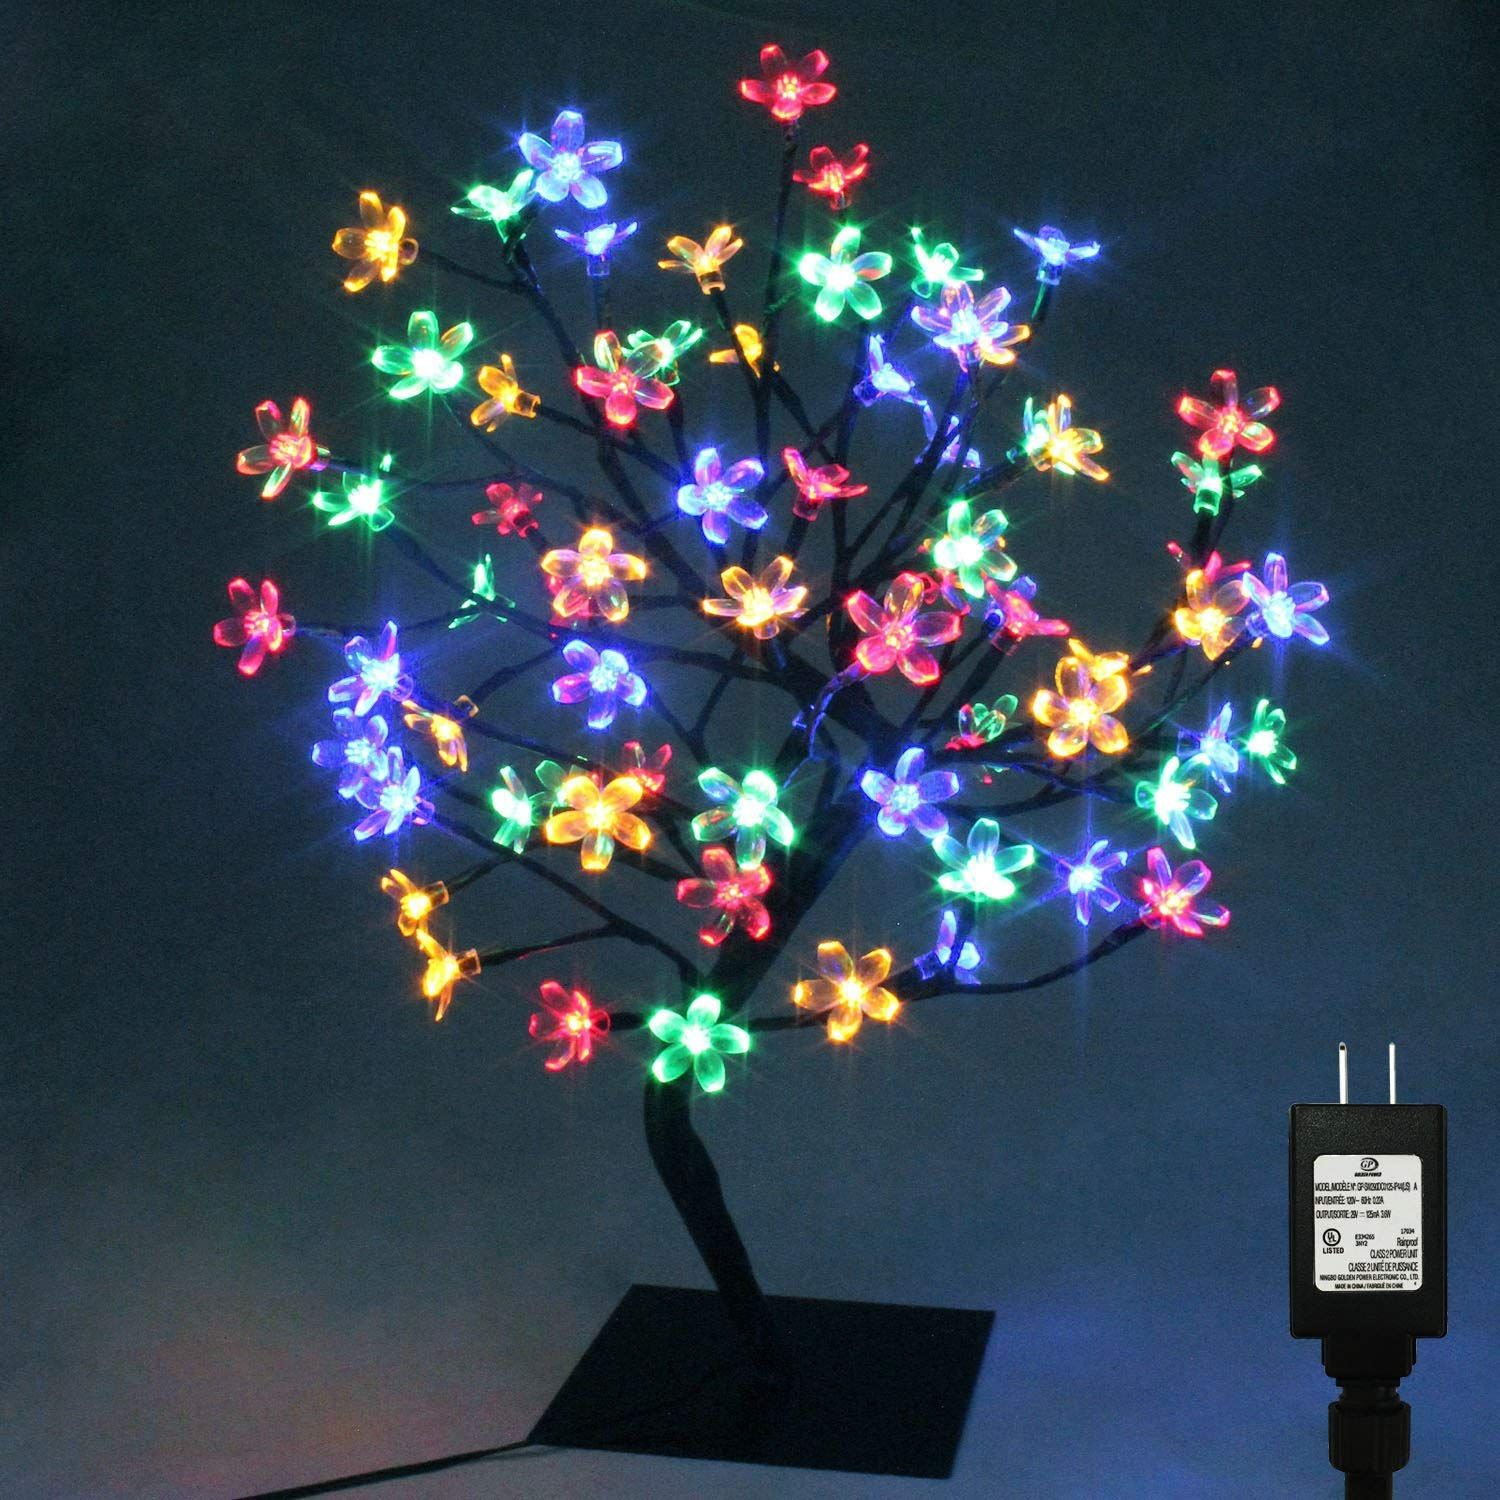 Pms 17inch 72 Leds Cherry Blossom Desk Top Bonsai Tree Light With Low Voltage Transformer Ul Listed Idea Christmas Tree Fairy Bonsai Tree Cherry Blossom Tree